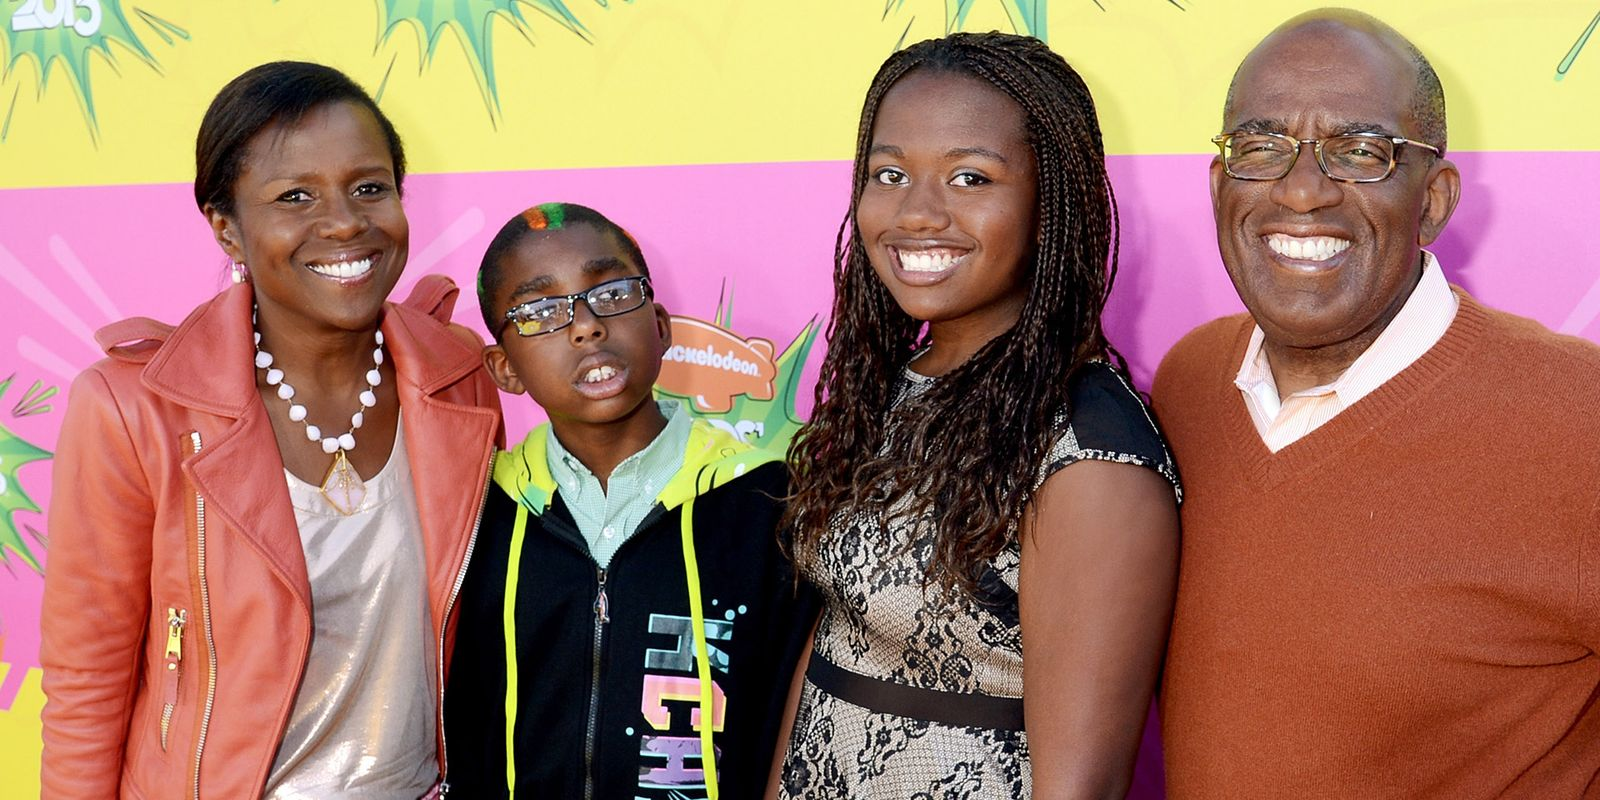 Family photo of the tv-personality, married to Deborah Roberts, famous for Sharknado 2: The Second One. & WordGirl.